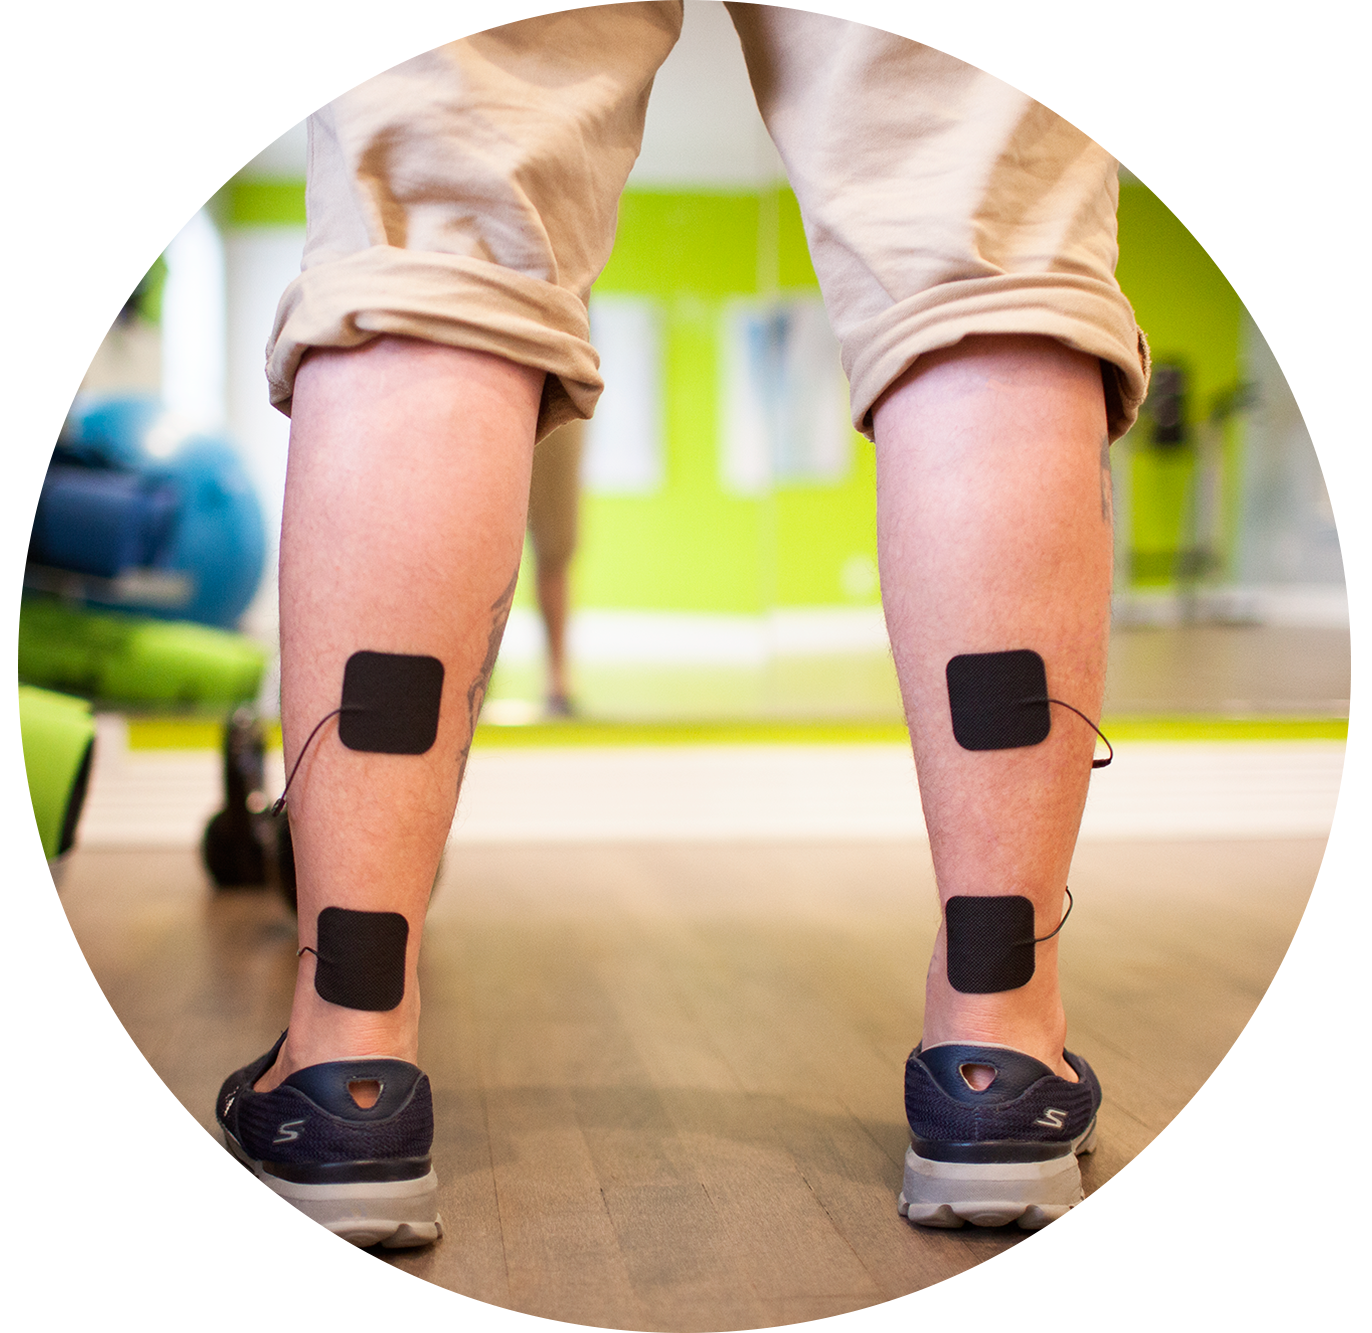 TENS Therapy for Calf strains